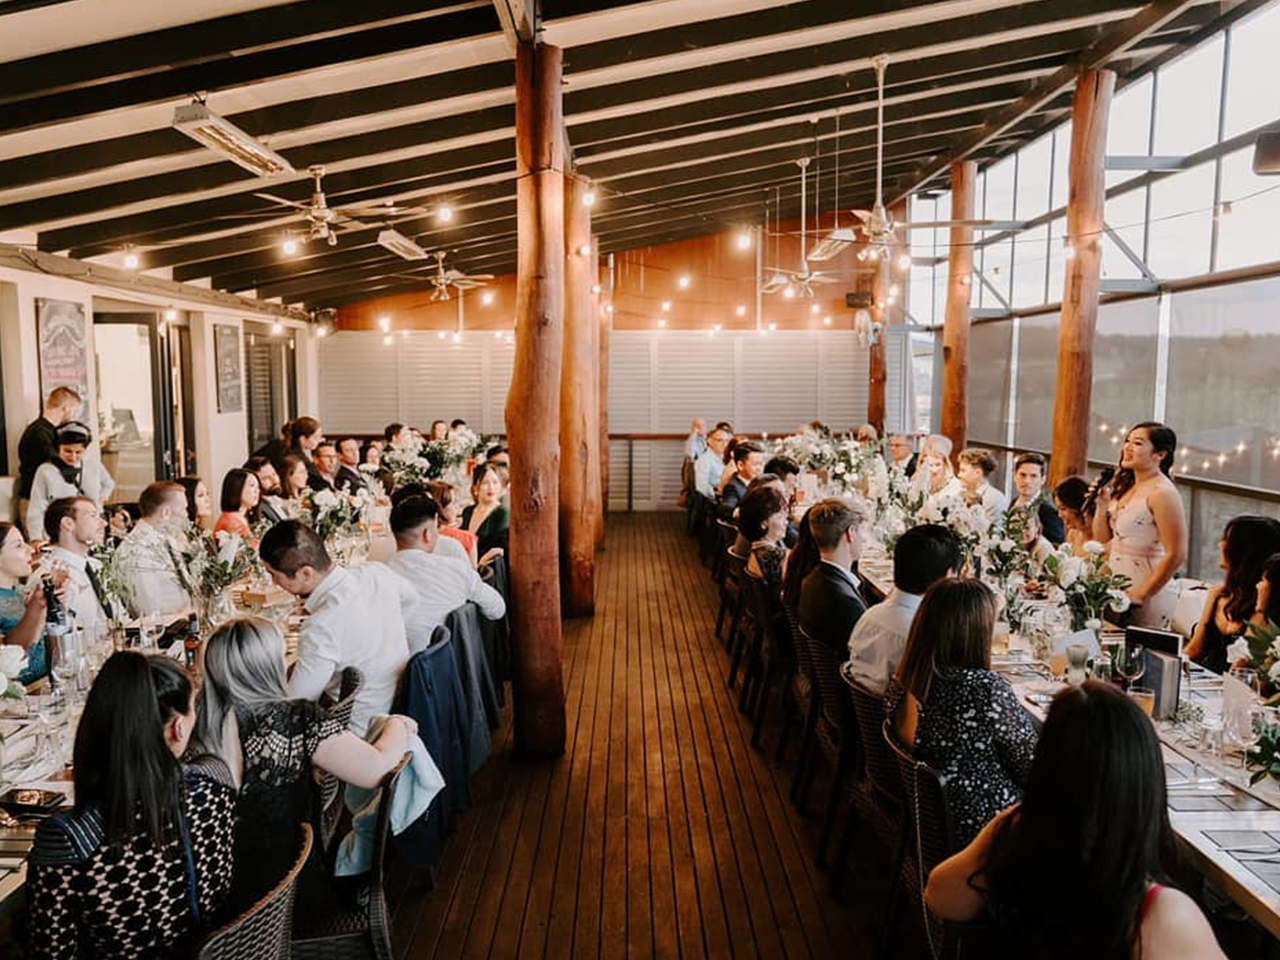 Guests Seated Inside The Function Room With Long Tables And Hanging Lights